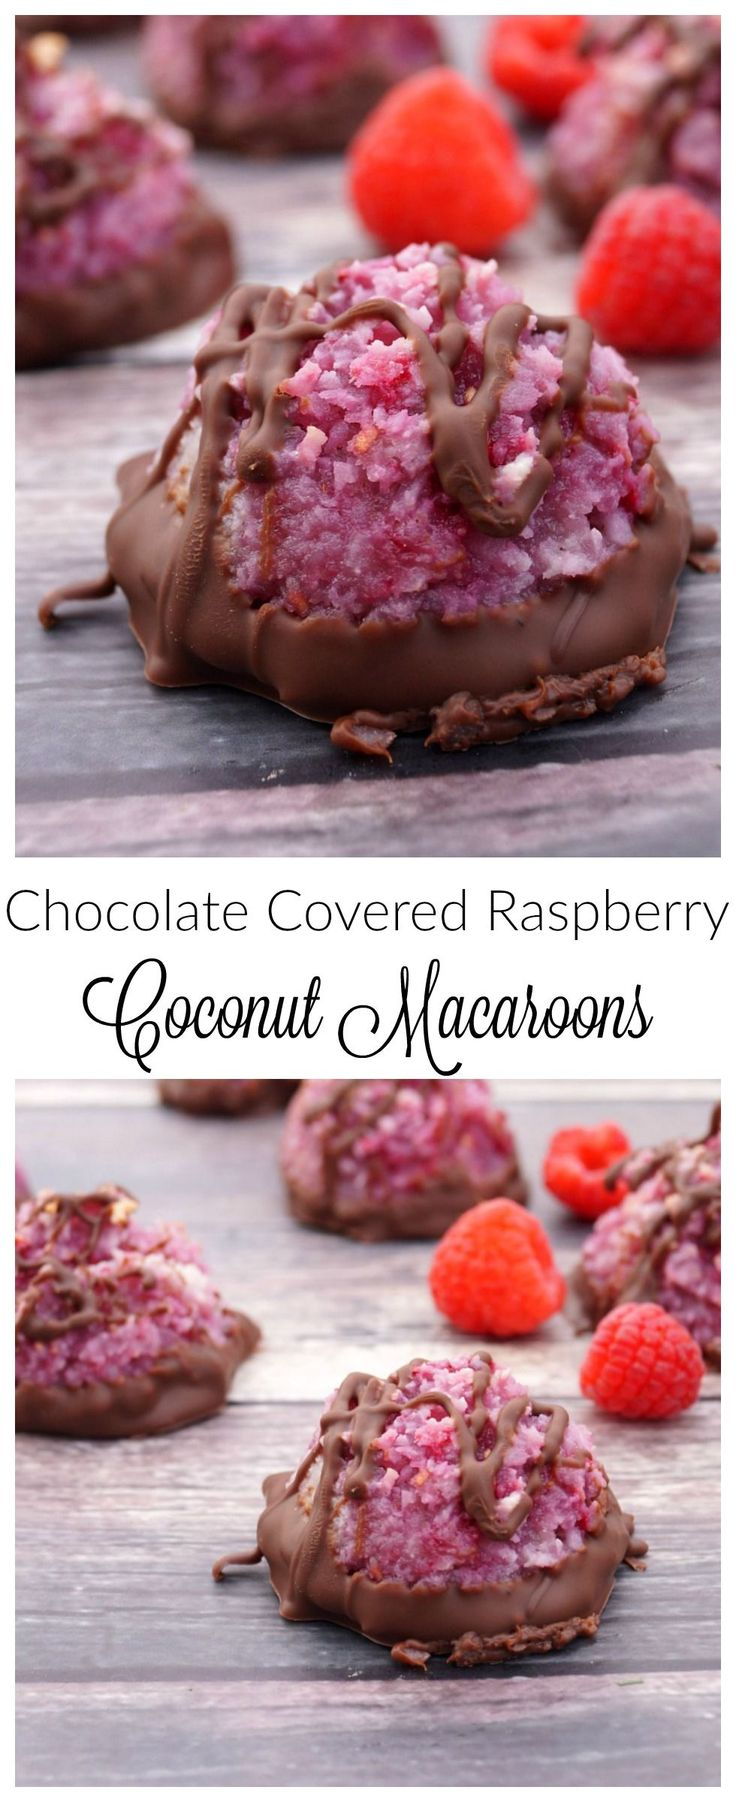 Chocolate Covered Raspberry Macaroons